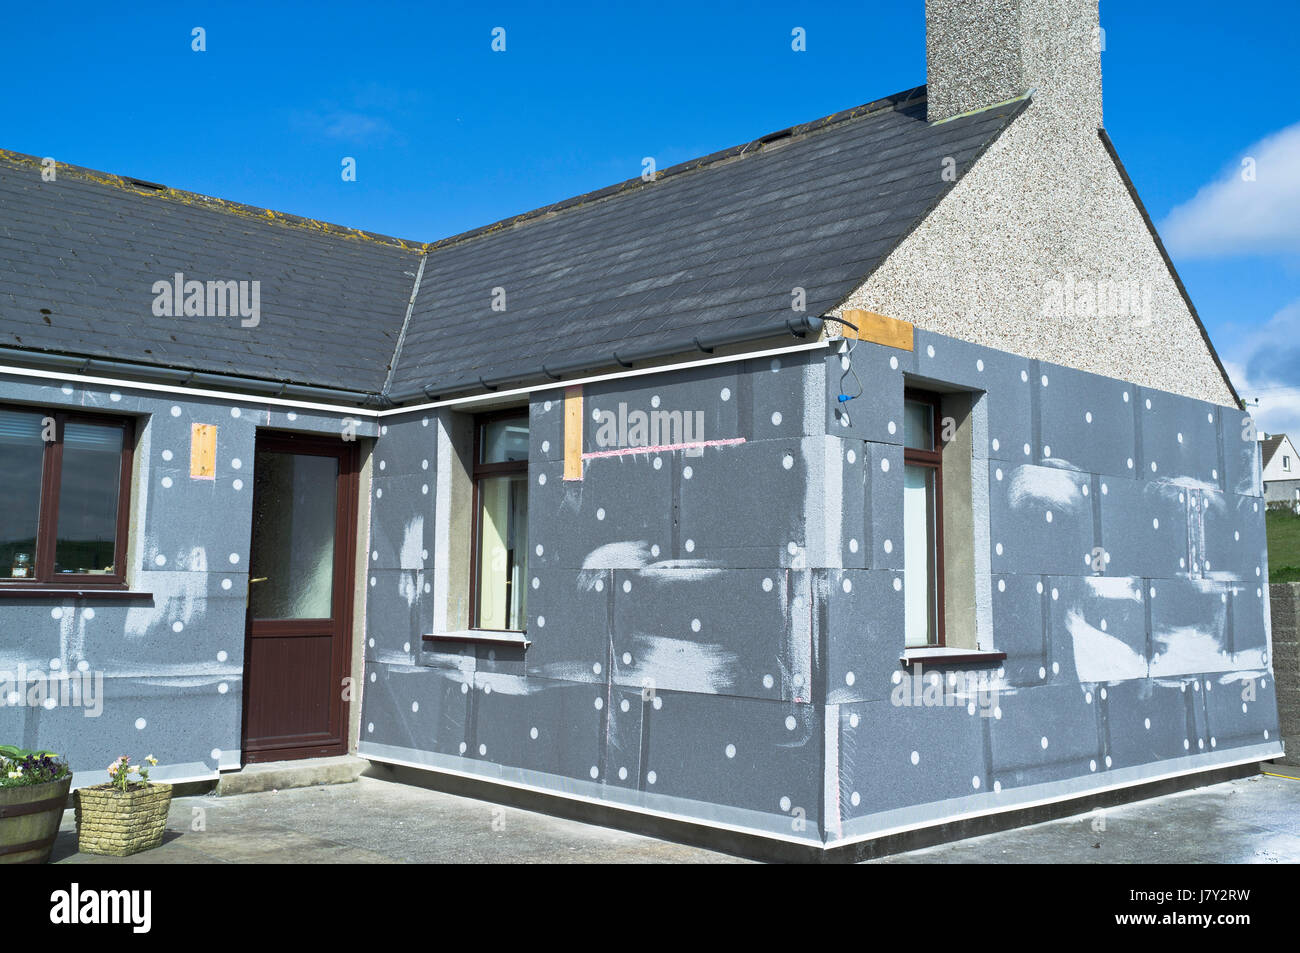 Nice Wall Insulation HEATING BUILDING House Insulation Uk External Wall Thermal Insulating  Exterior Walls Outside Part 5